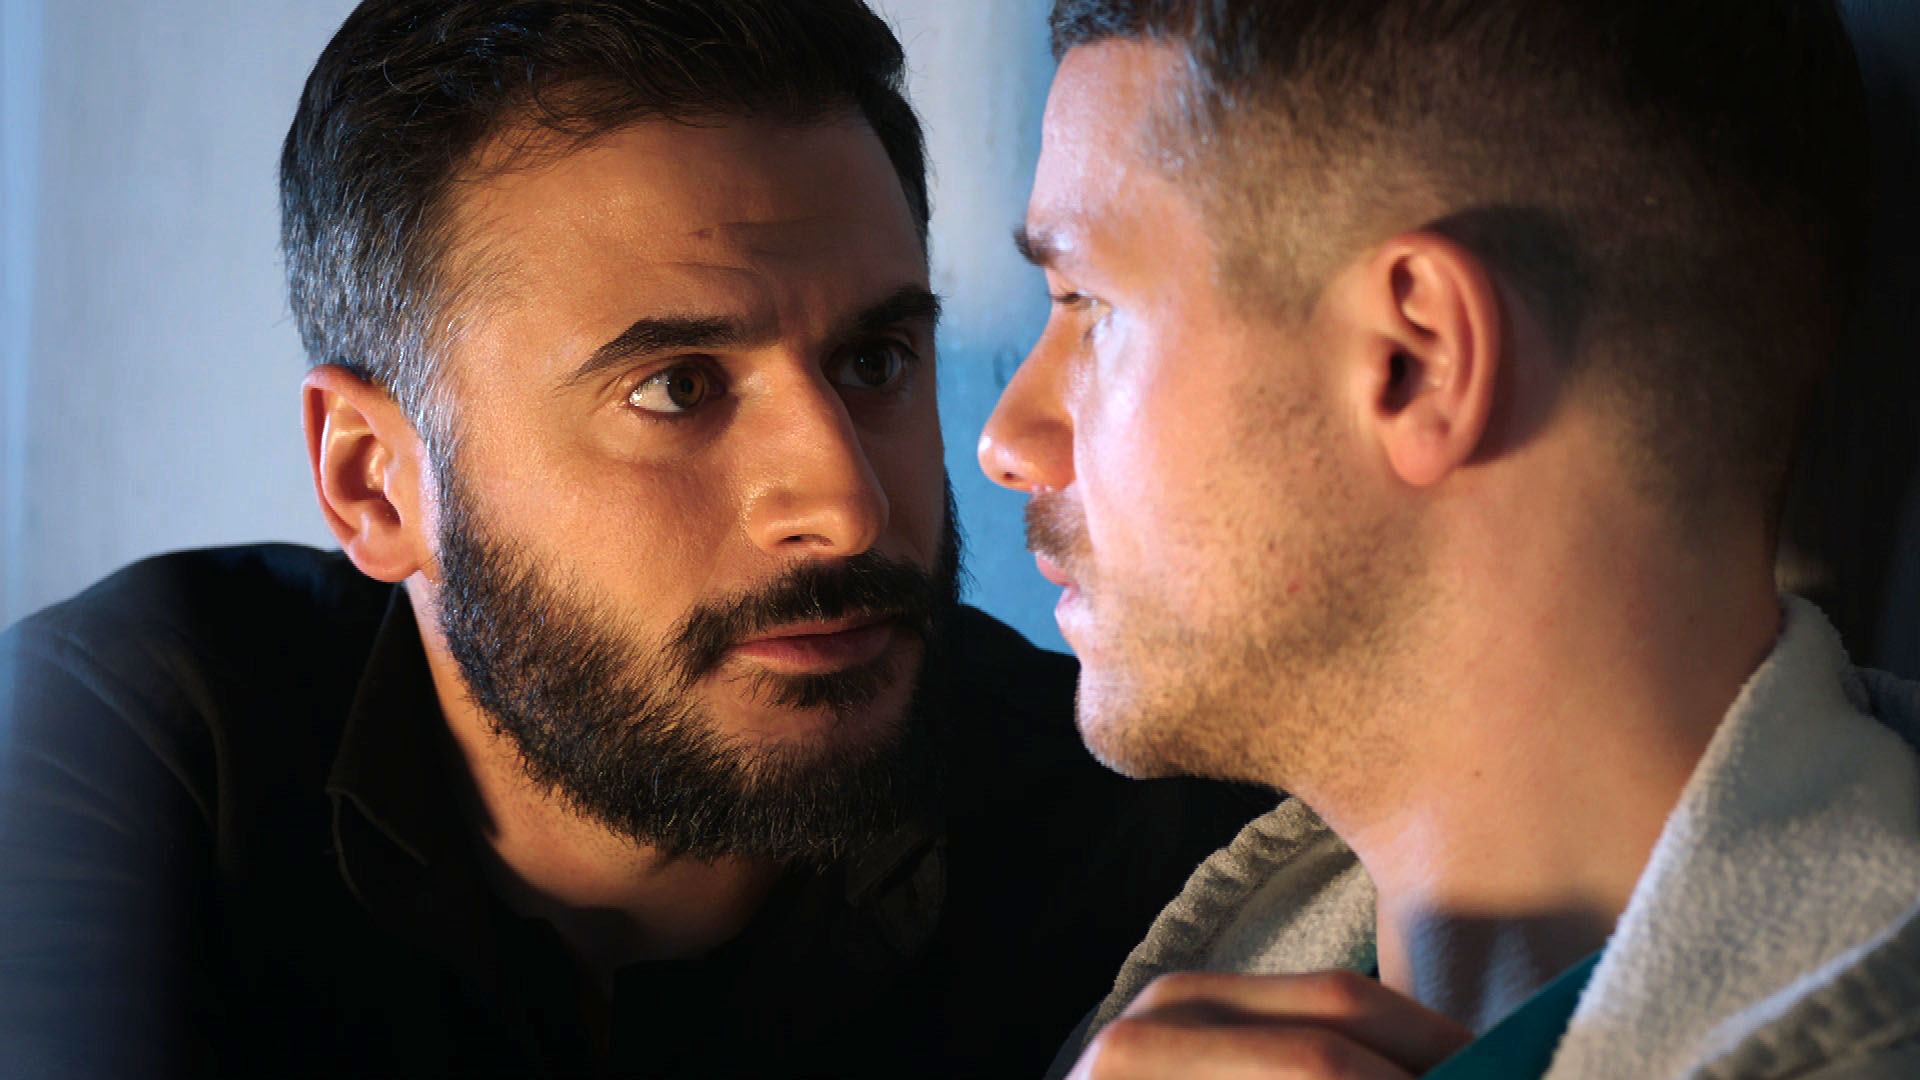 7 Holby City spoilers: Dominic's anguish as Isaac returns to Holby